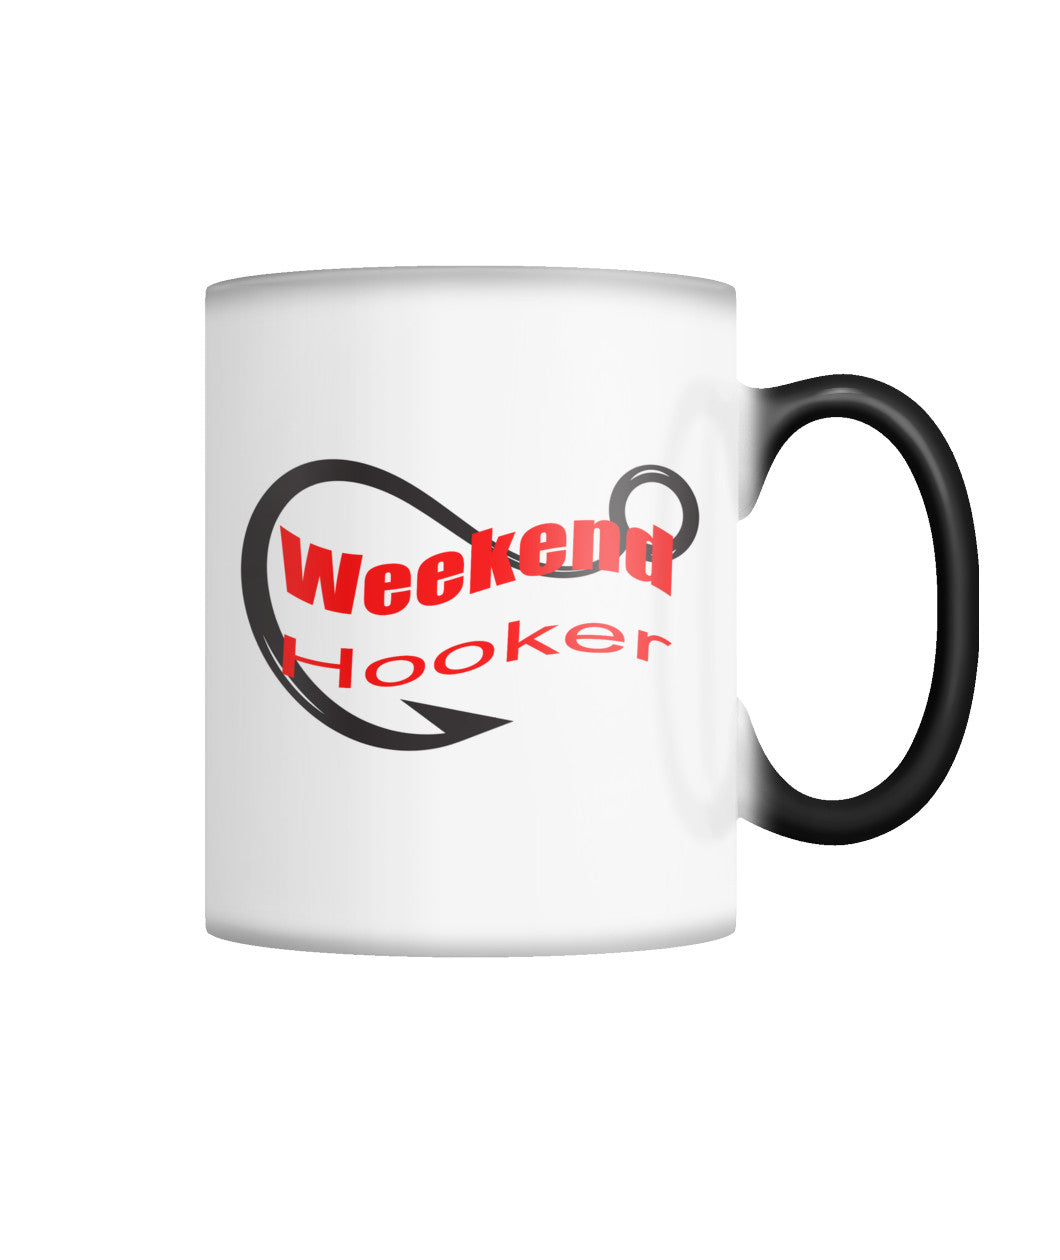 Weekend Hooker Mug Color Changing Mug